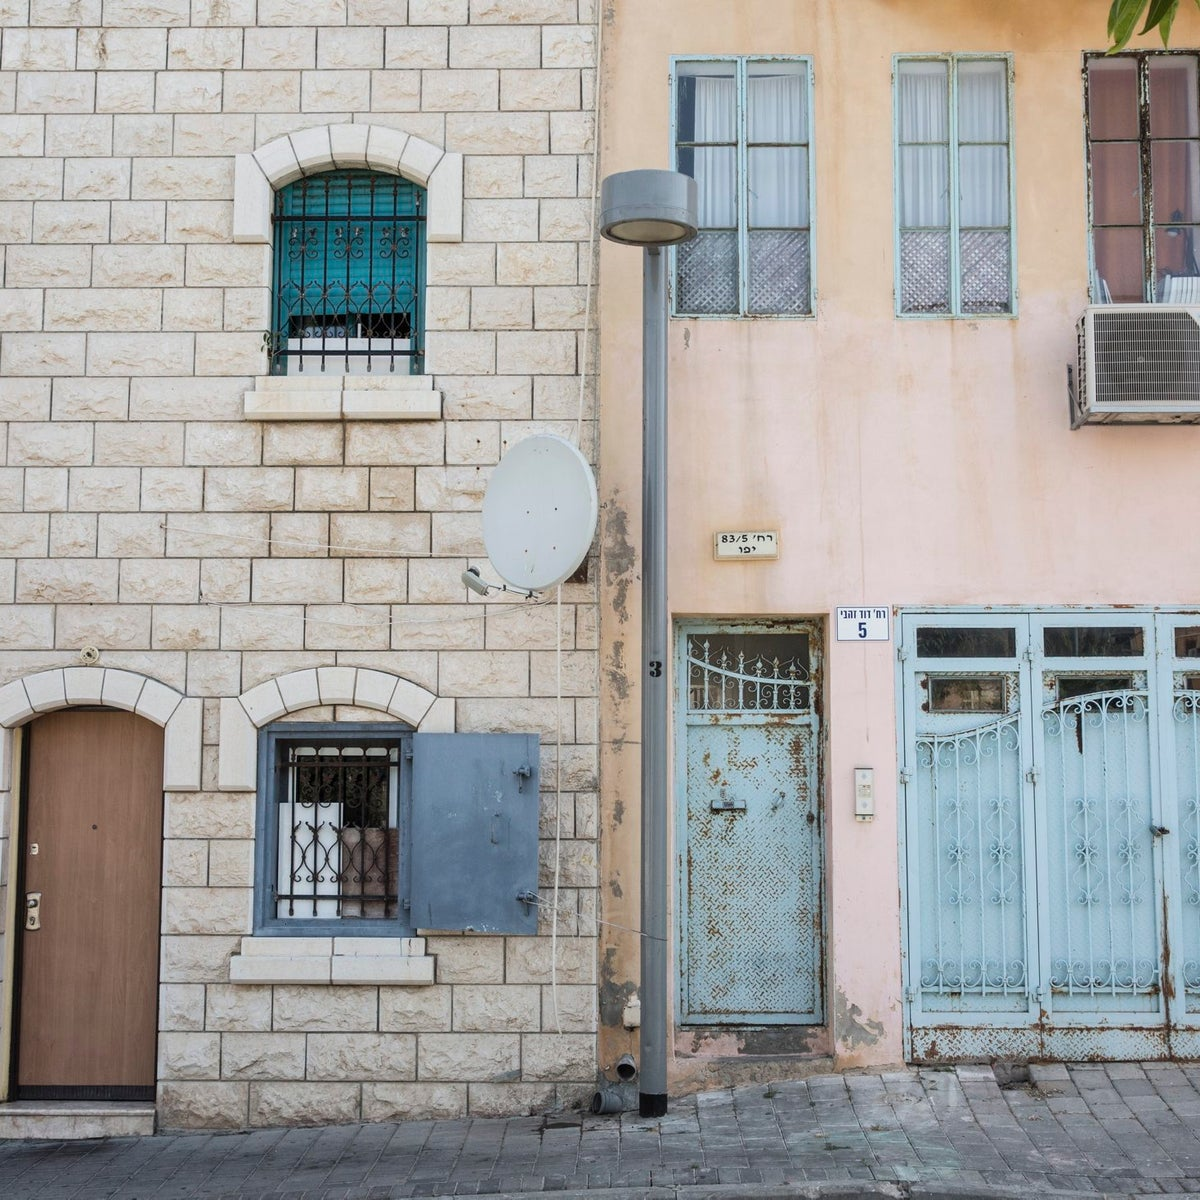 Before and after: Two houses on a street in Jaffa, where house prices have soared in the past decade.